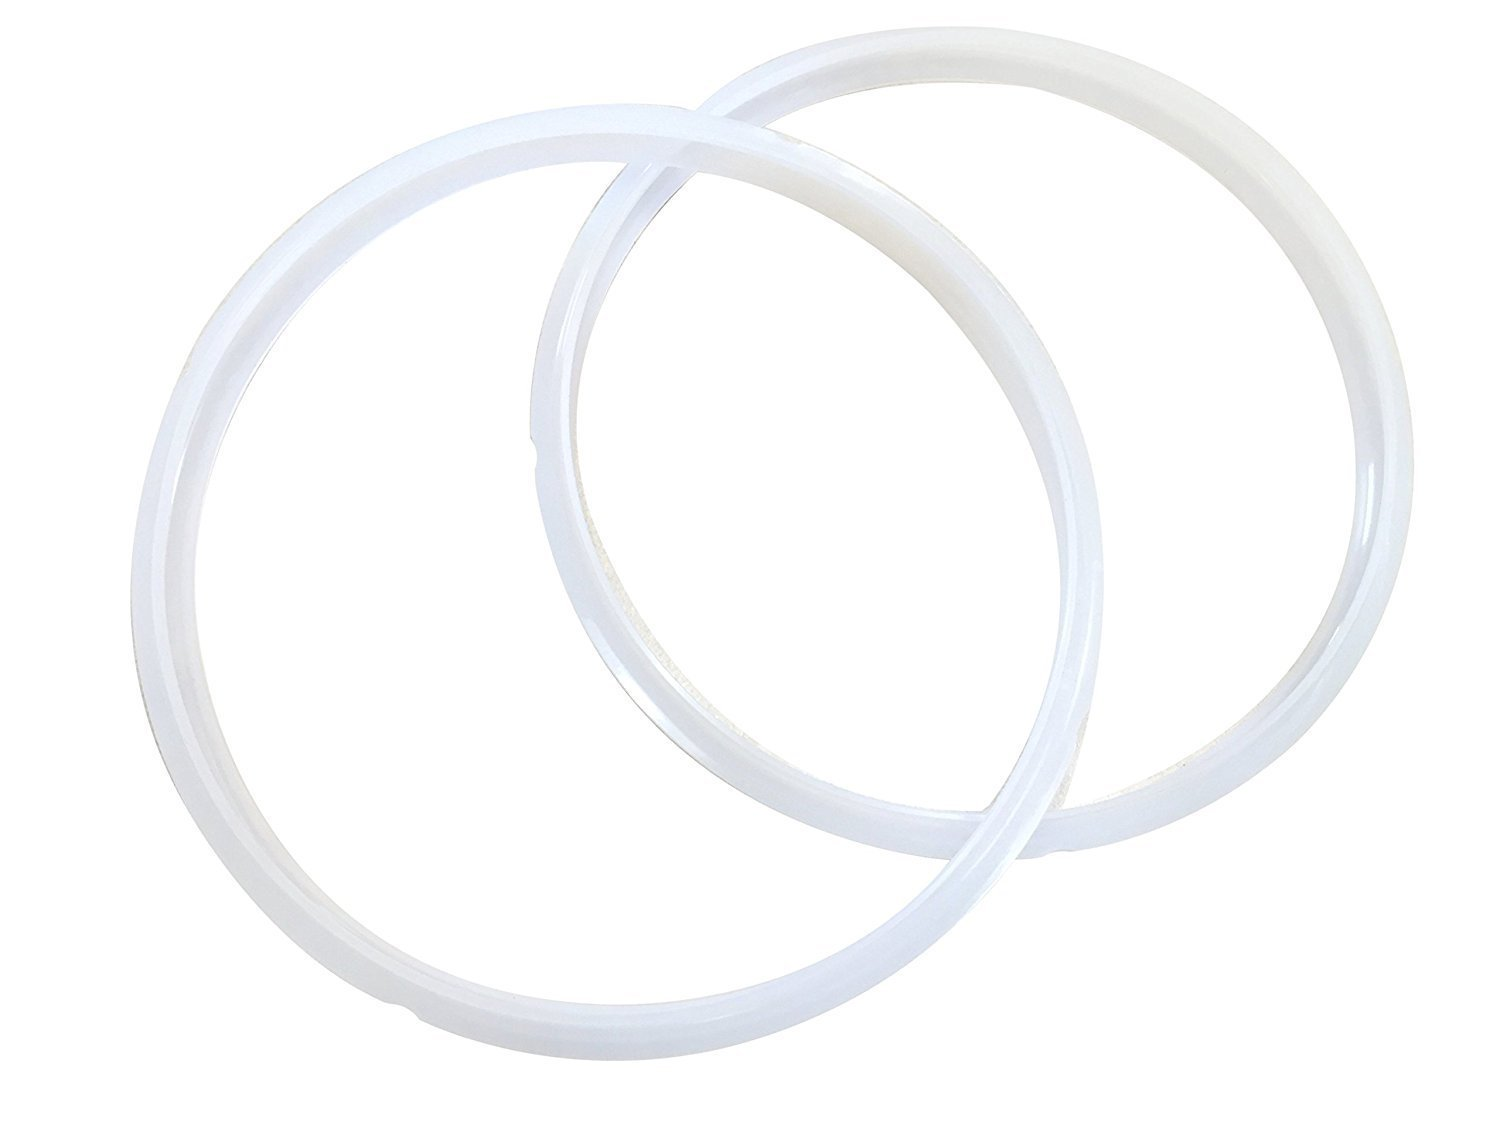 Twin Pack: Two Rubber Gaskets For Power Pressure Cookers (All 10 Quart Models)